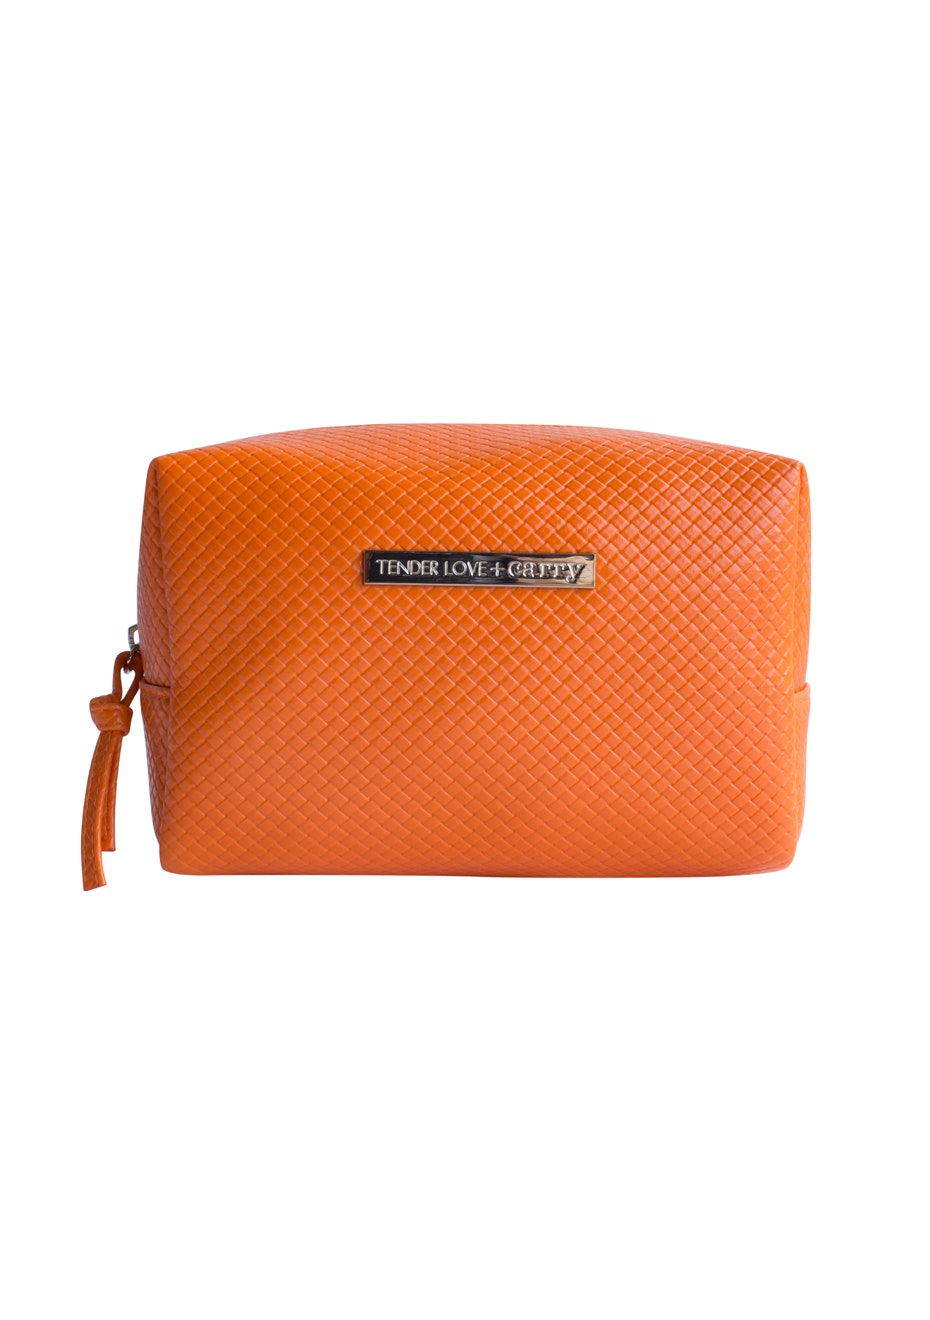 TL+C - Braid Tangerine Case - Orange